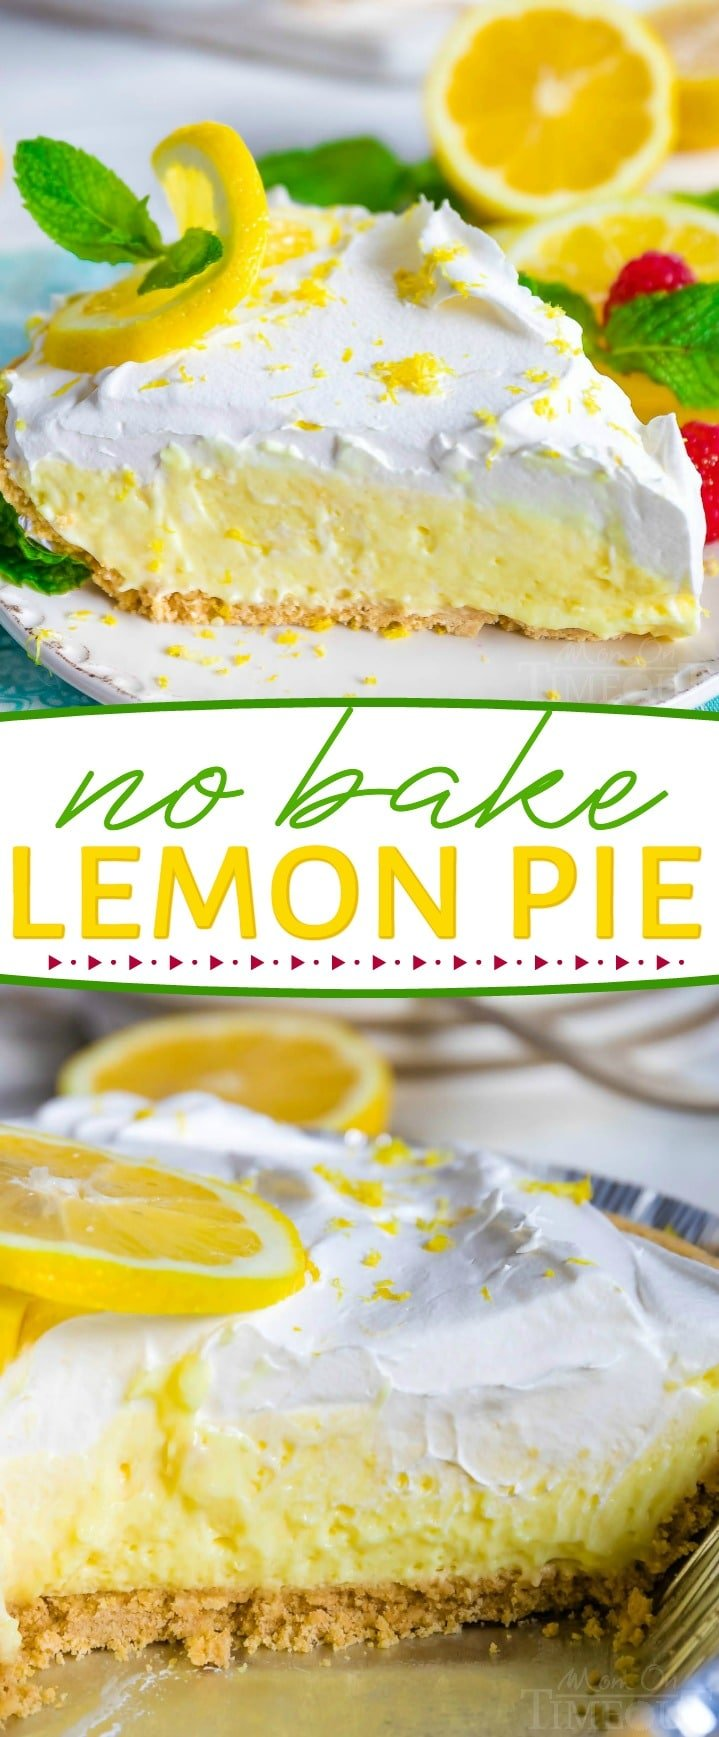 no-bake-lemon-pie-collage